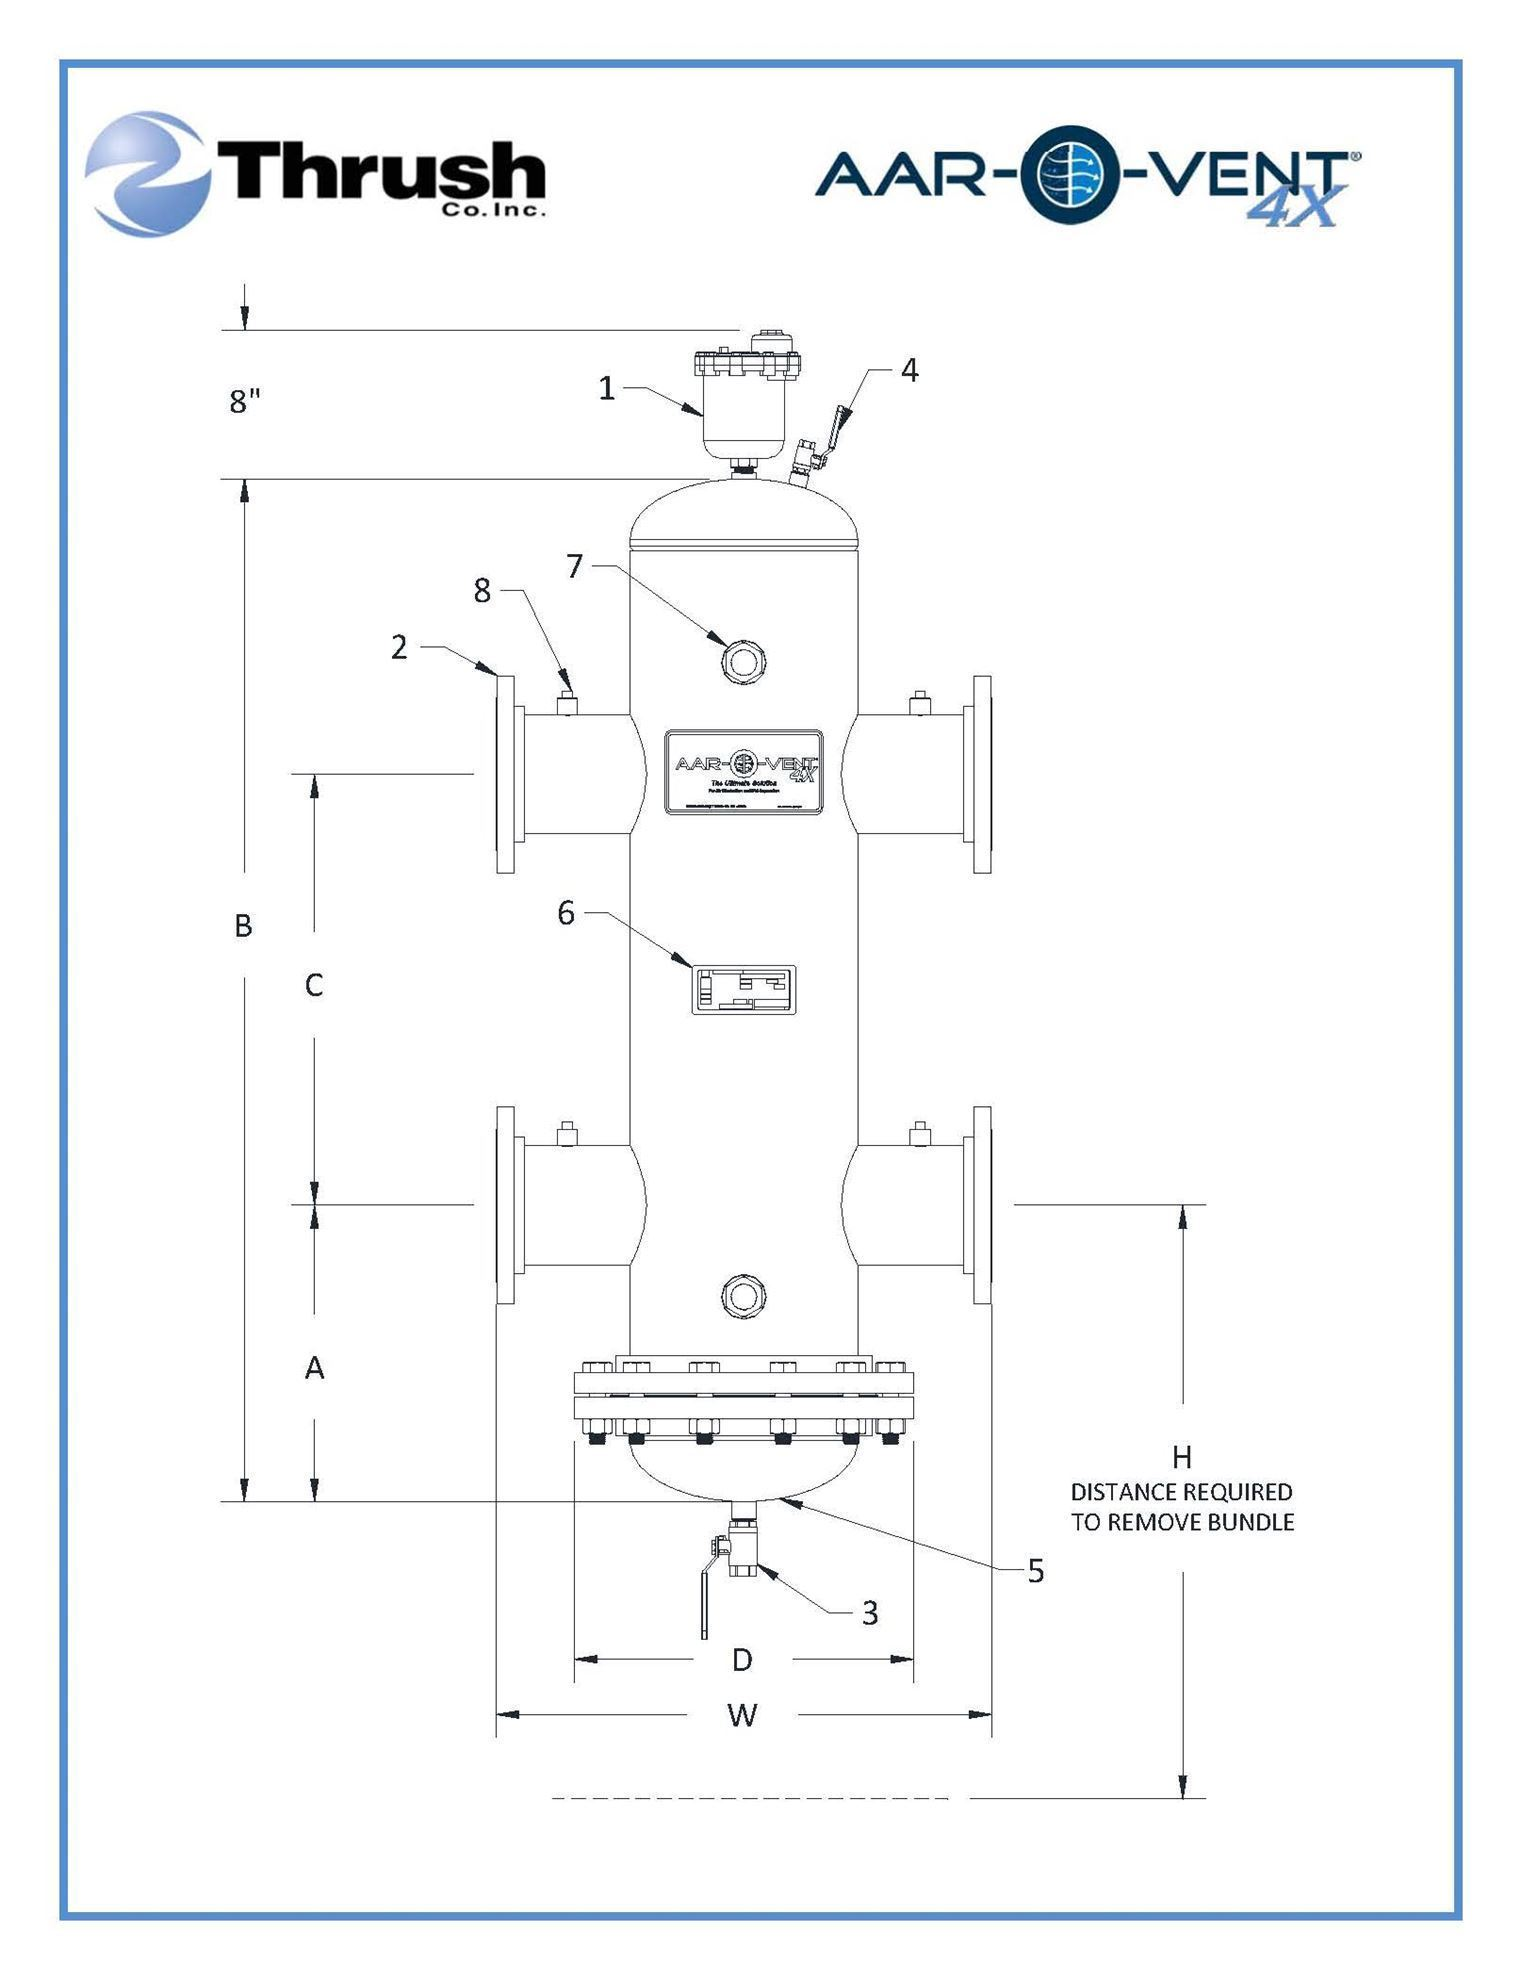 """Picture of T4SR-120-X , Aar-O-Vent™ - 12"""" HSR Series Hydraulic Separator, Standard Velocity, Removable Head Cover, Without Options"""